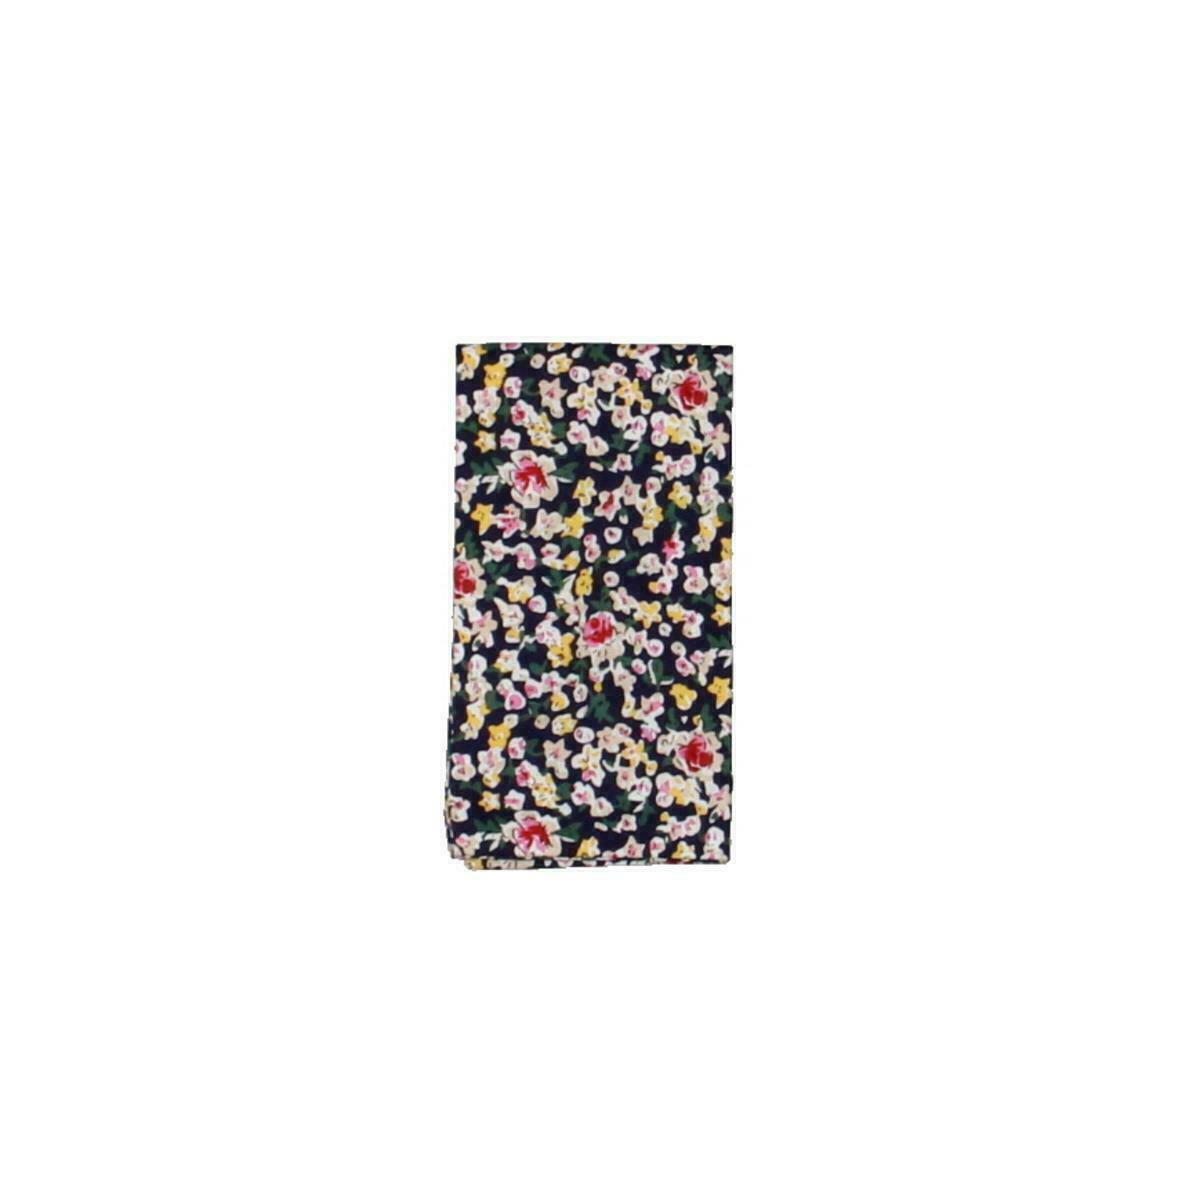 The Gift Men's Pocket Square Navy Blue Hanning Floral Print Accessory #650